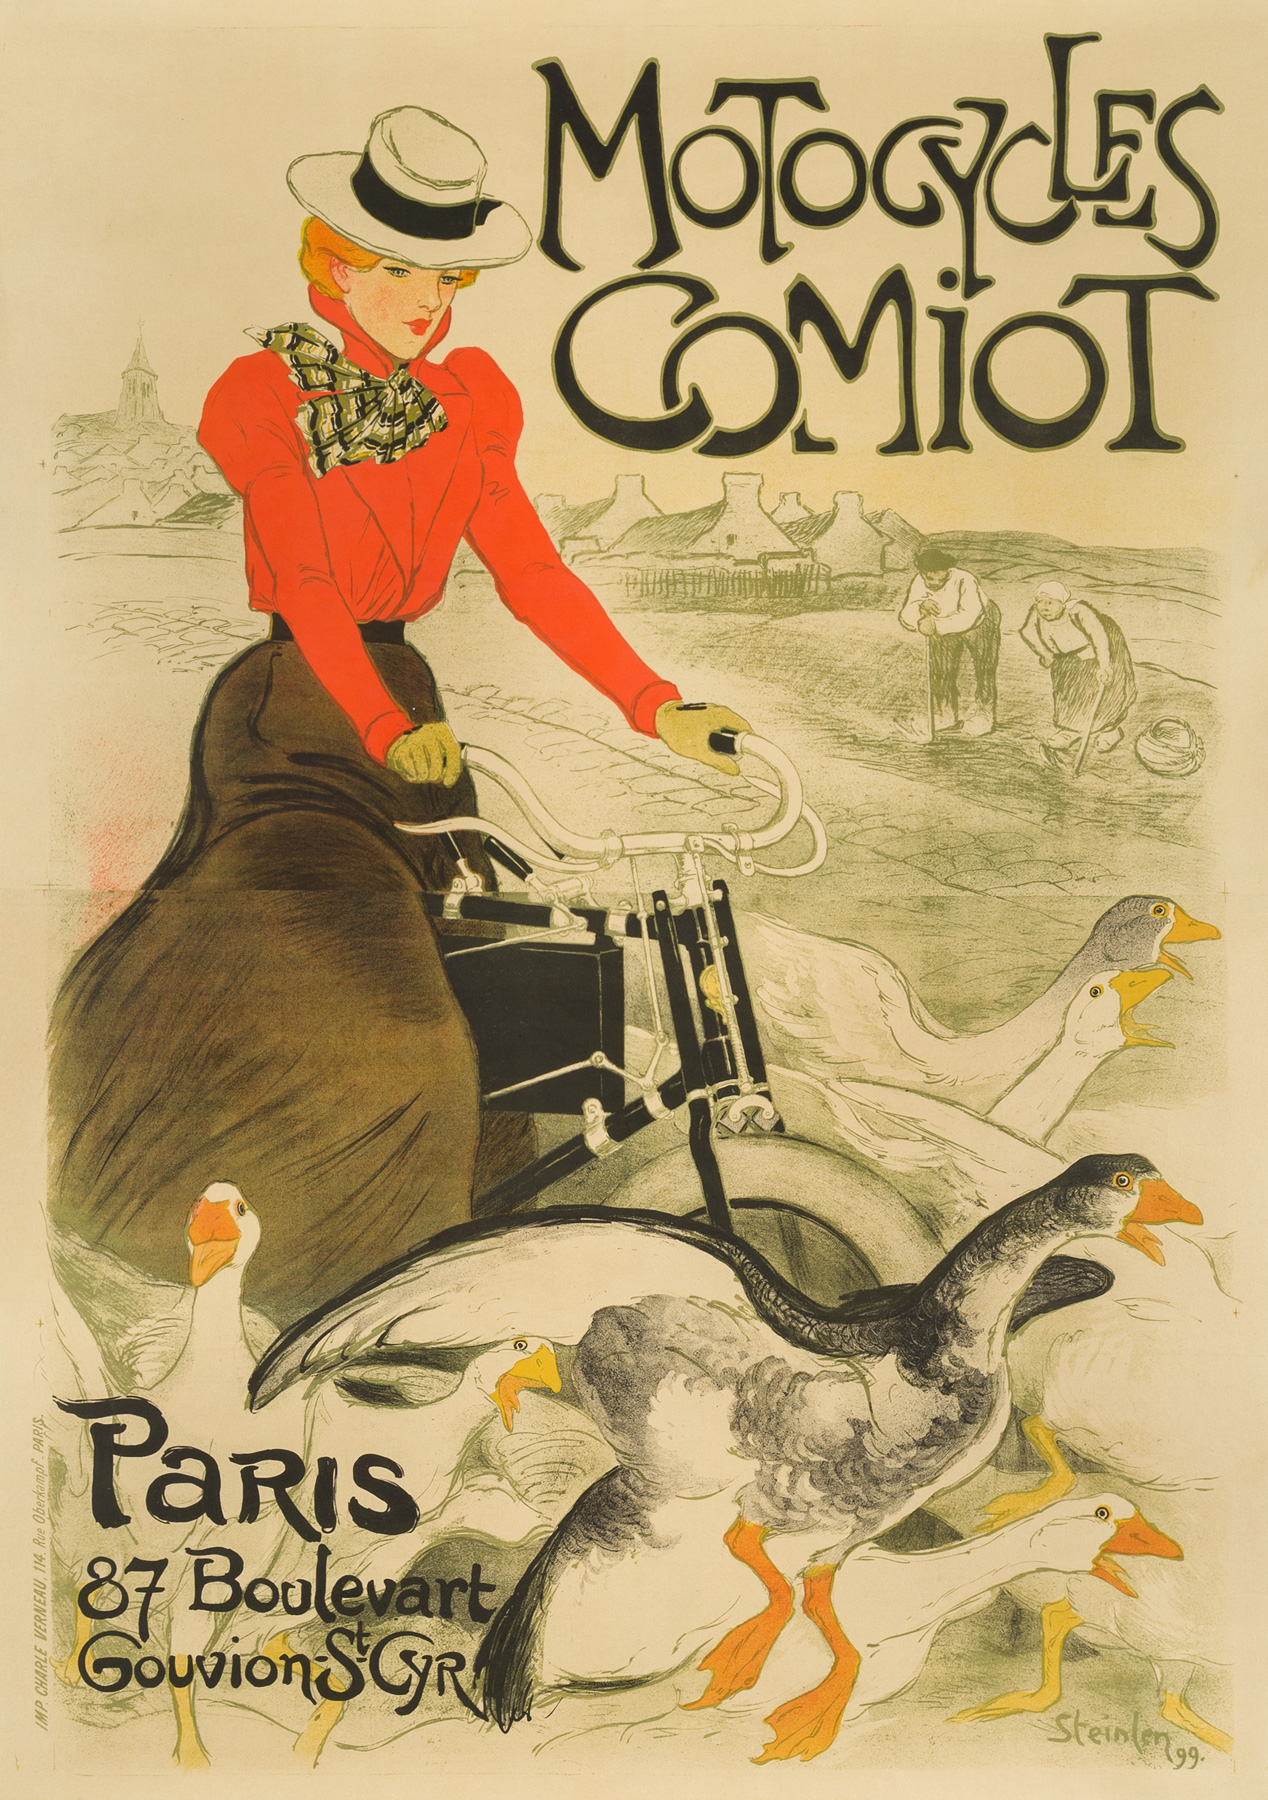 Motocycles Comiot artwork by Theophile Alexandre Steinlen - art listed for sale on Artplode